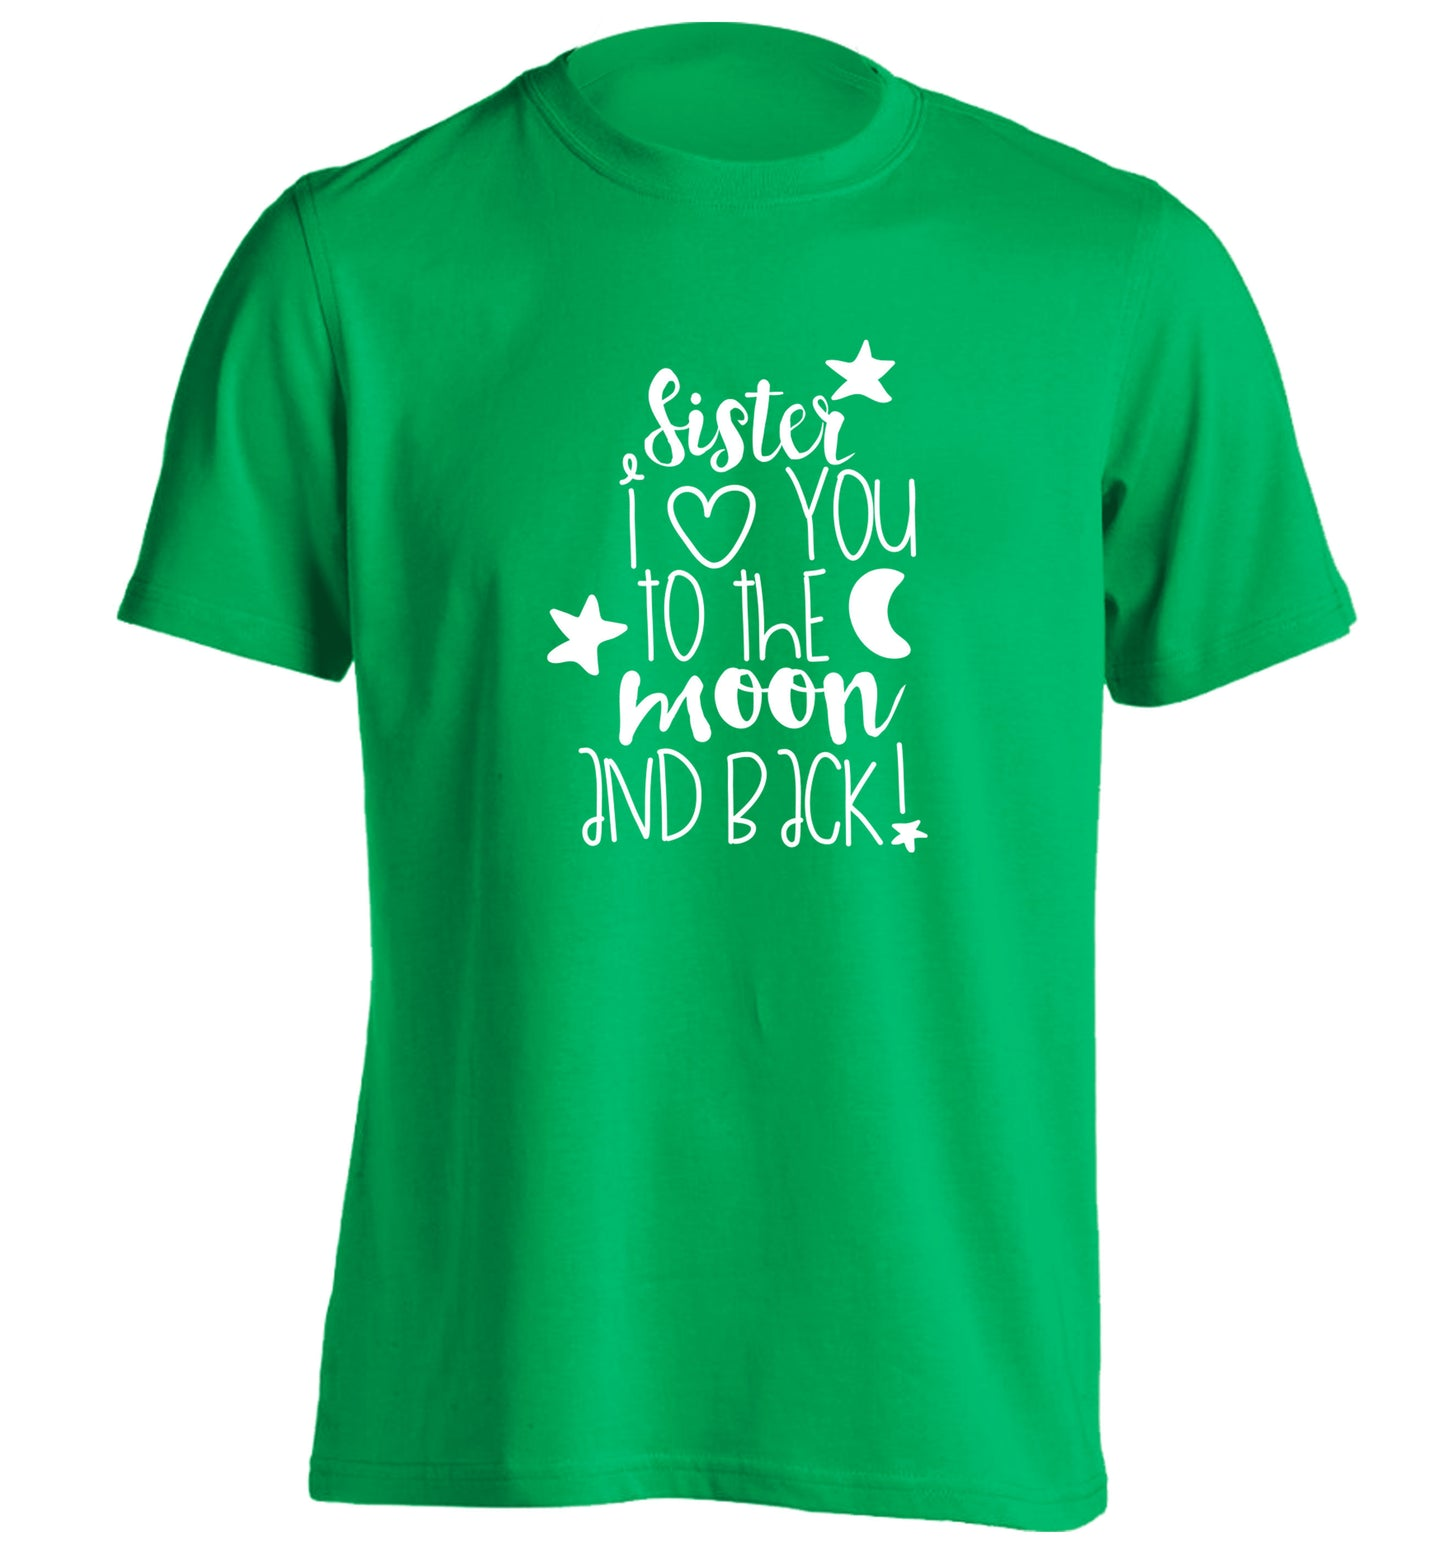 Sister I love you to the moon and back adults unisex green Tshirt 2XL